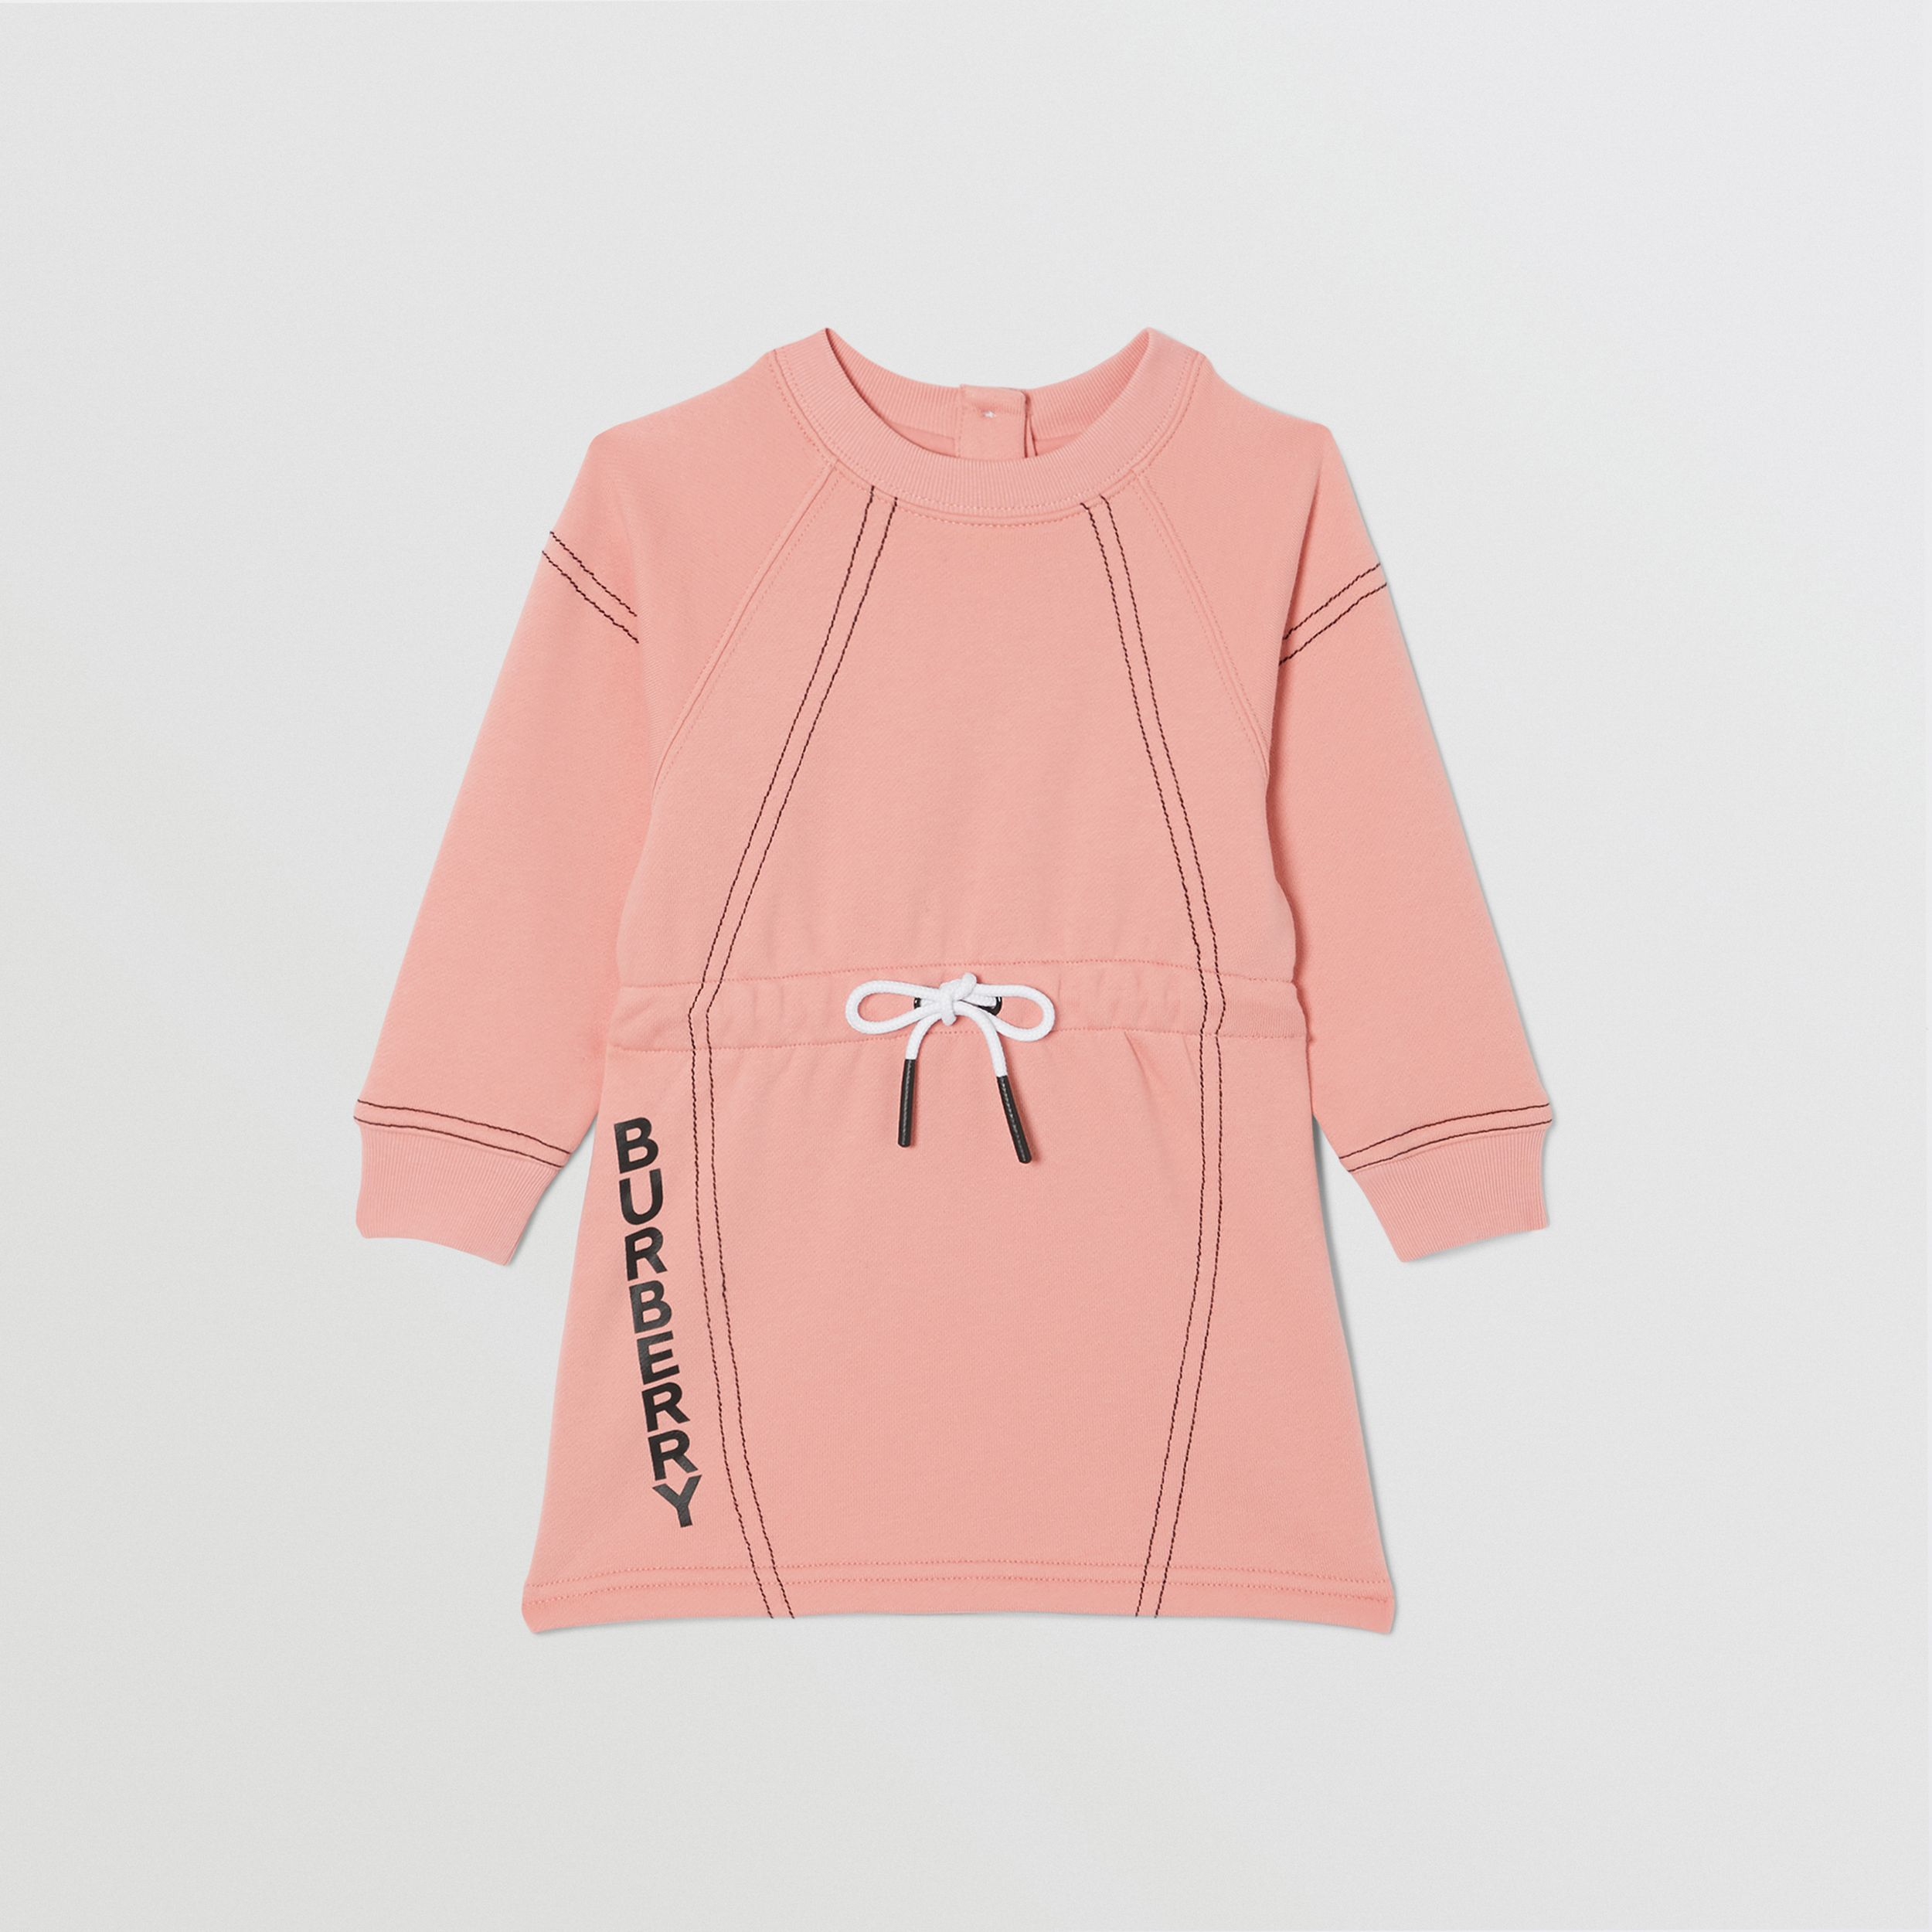 Logo Print Cotton Sweater Dress in Peach - Children | Burberry - 1